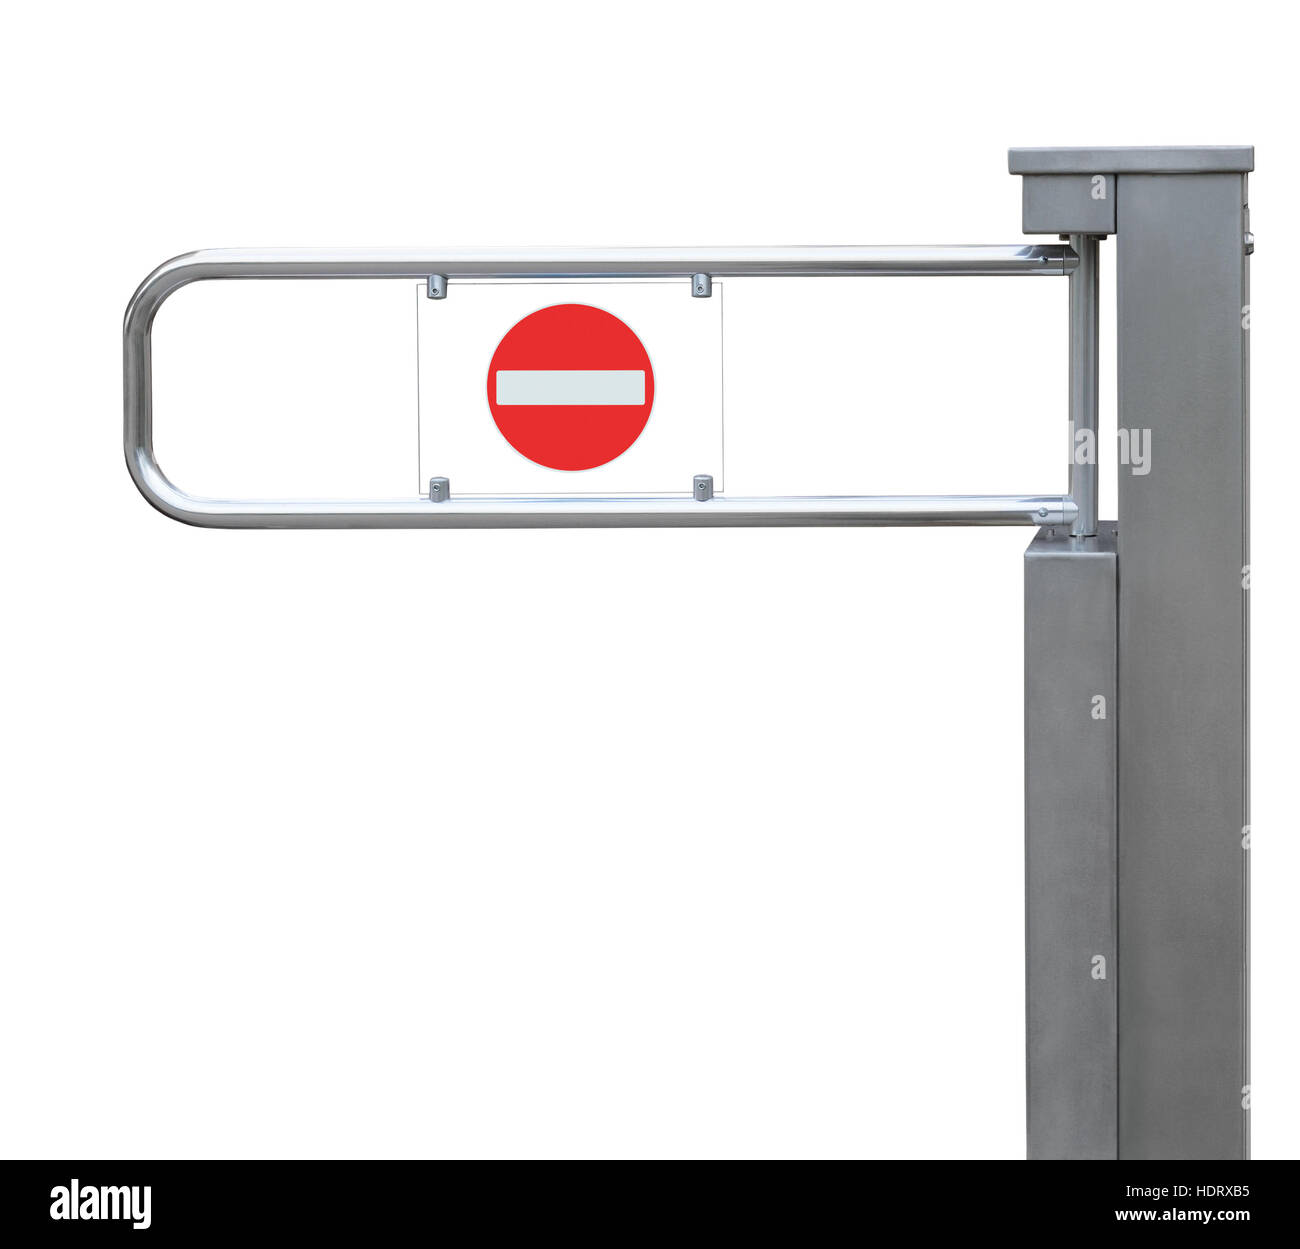 Entrance tourniquet, detailed turnstile, stainless steel, red no entry sign, isolated closeup, access control concept - Stock Image